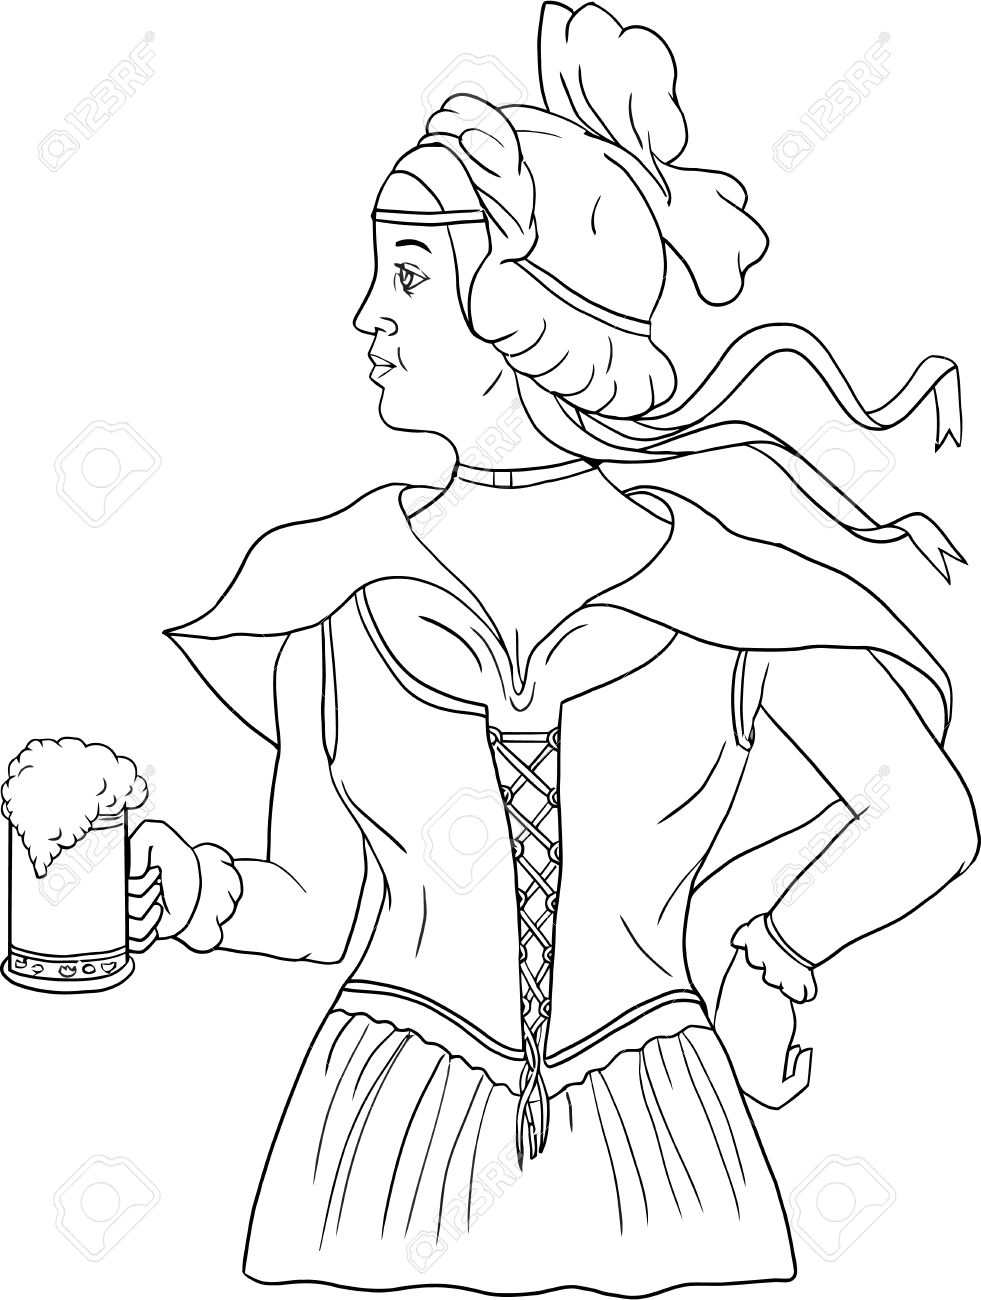 981x1300 Drawing Sketch Style Illustration Of A German Barmaid Wearing